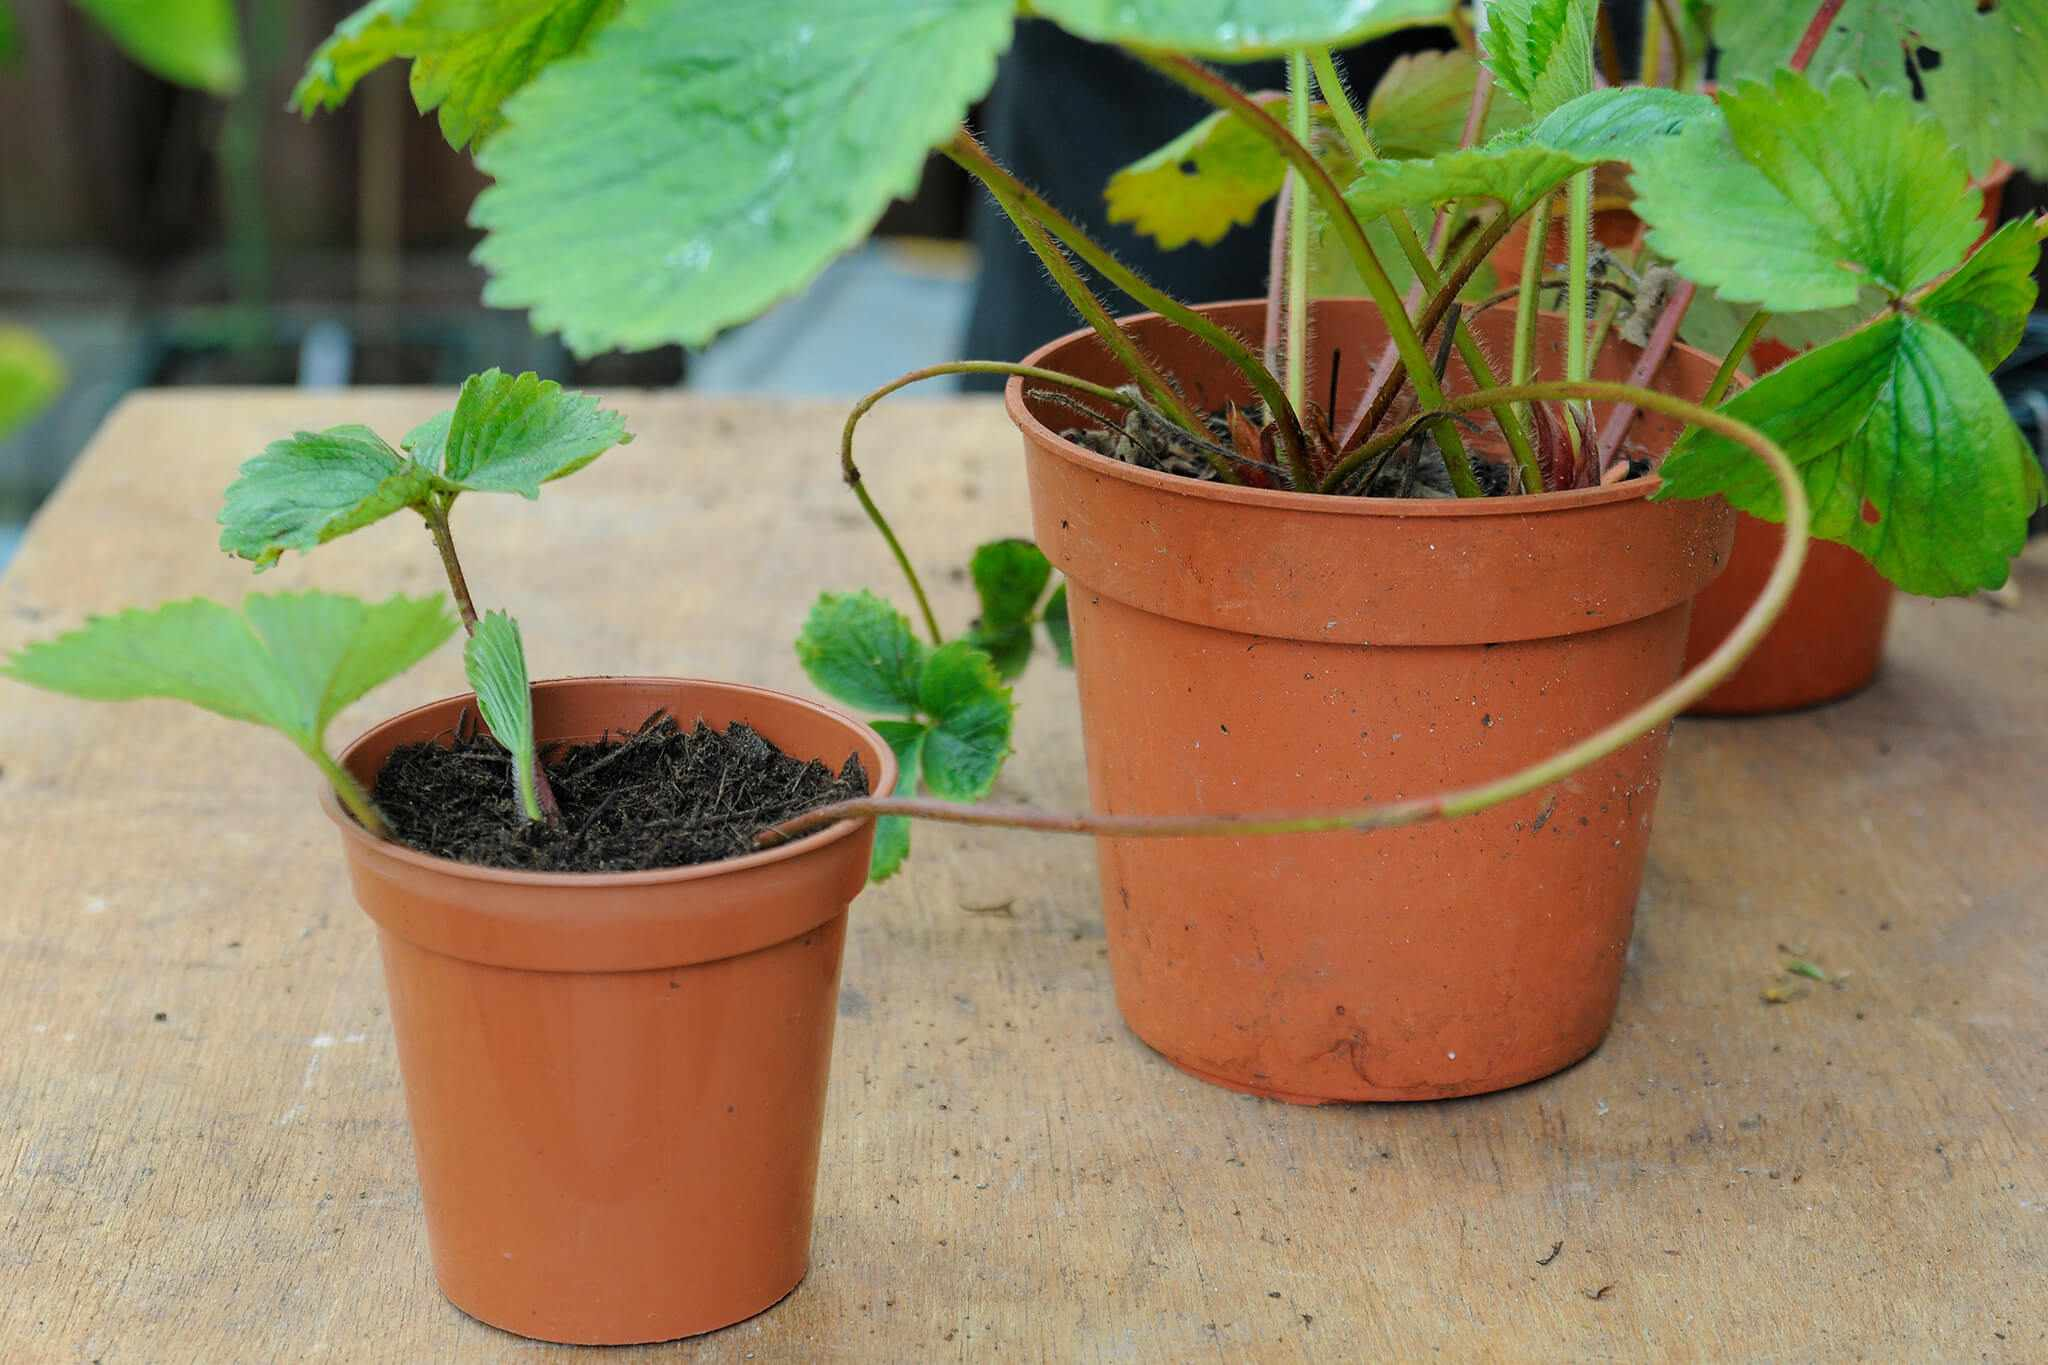 Propagating strawberries from runners